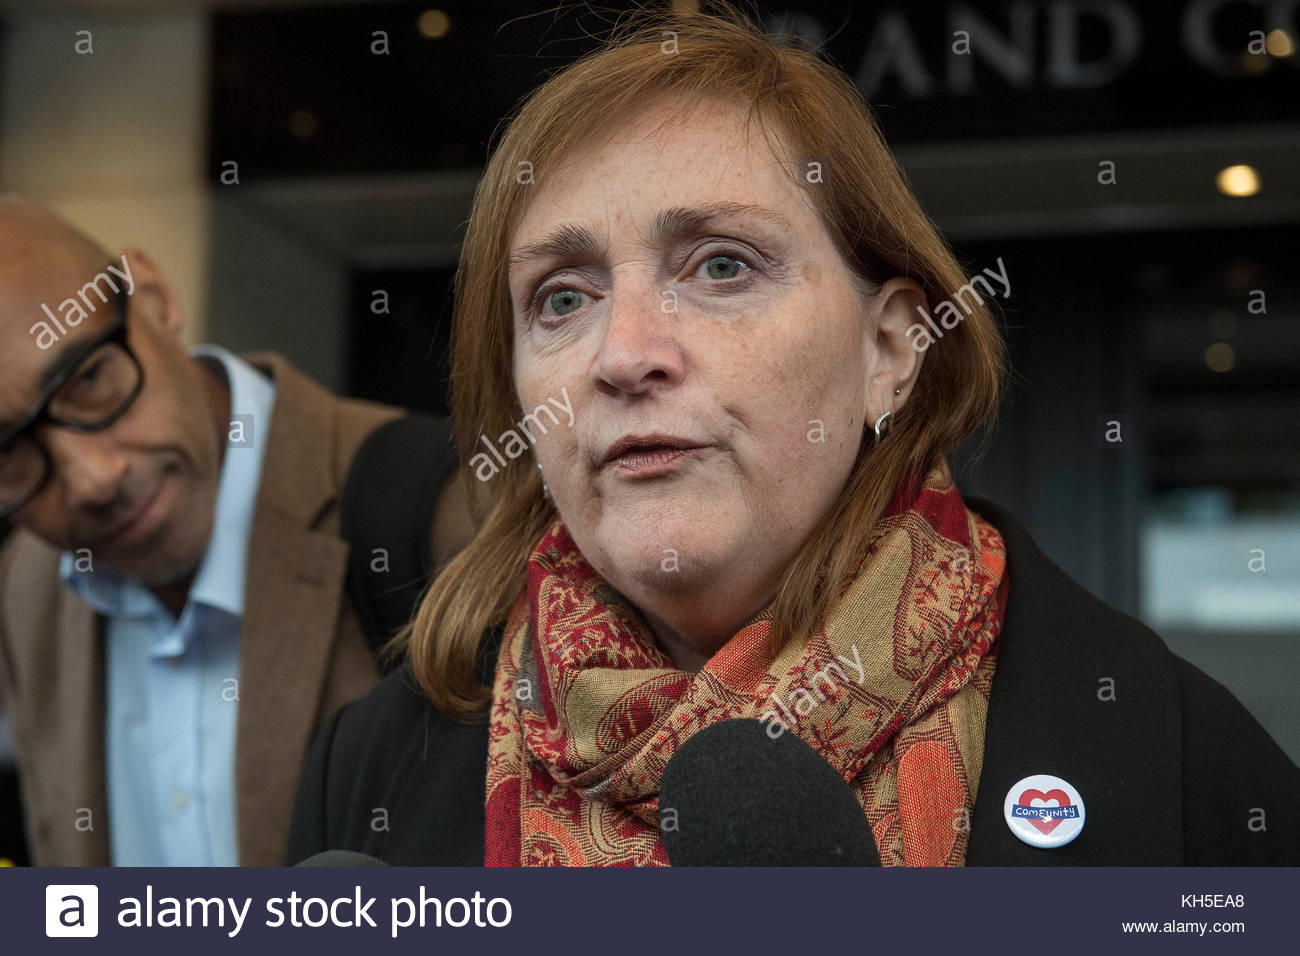 File photo dated 14/09/17 of Labour MP Emma Dent Coad, who has been accused by Tory London Assembly Shaun Bailey - Stock Image